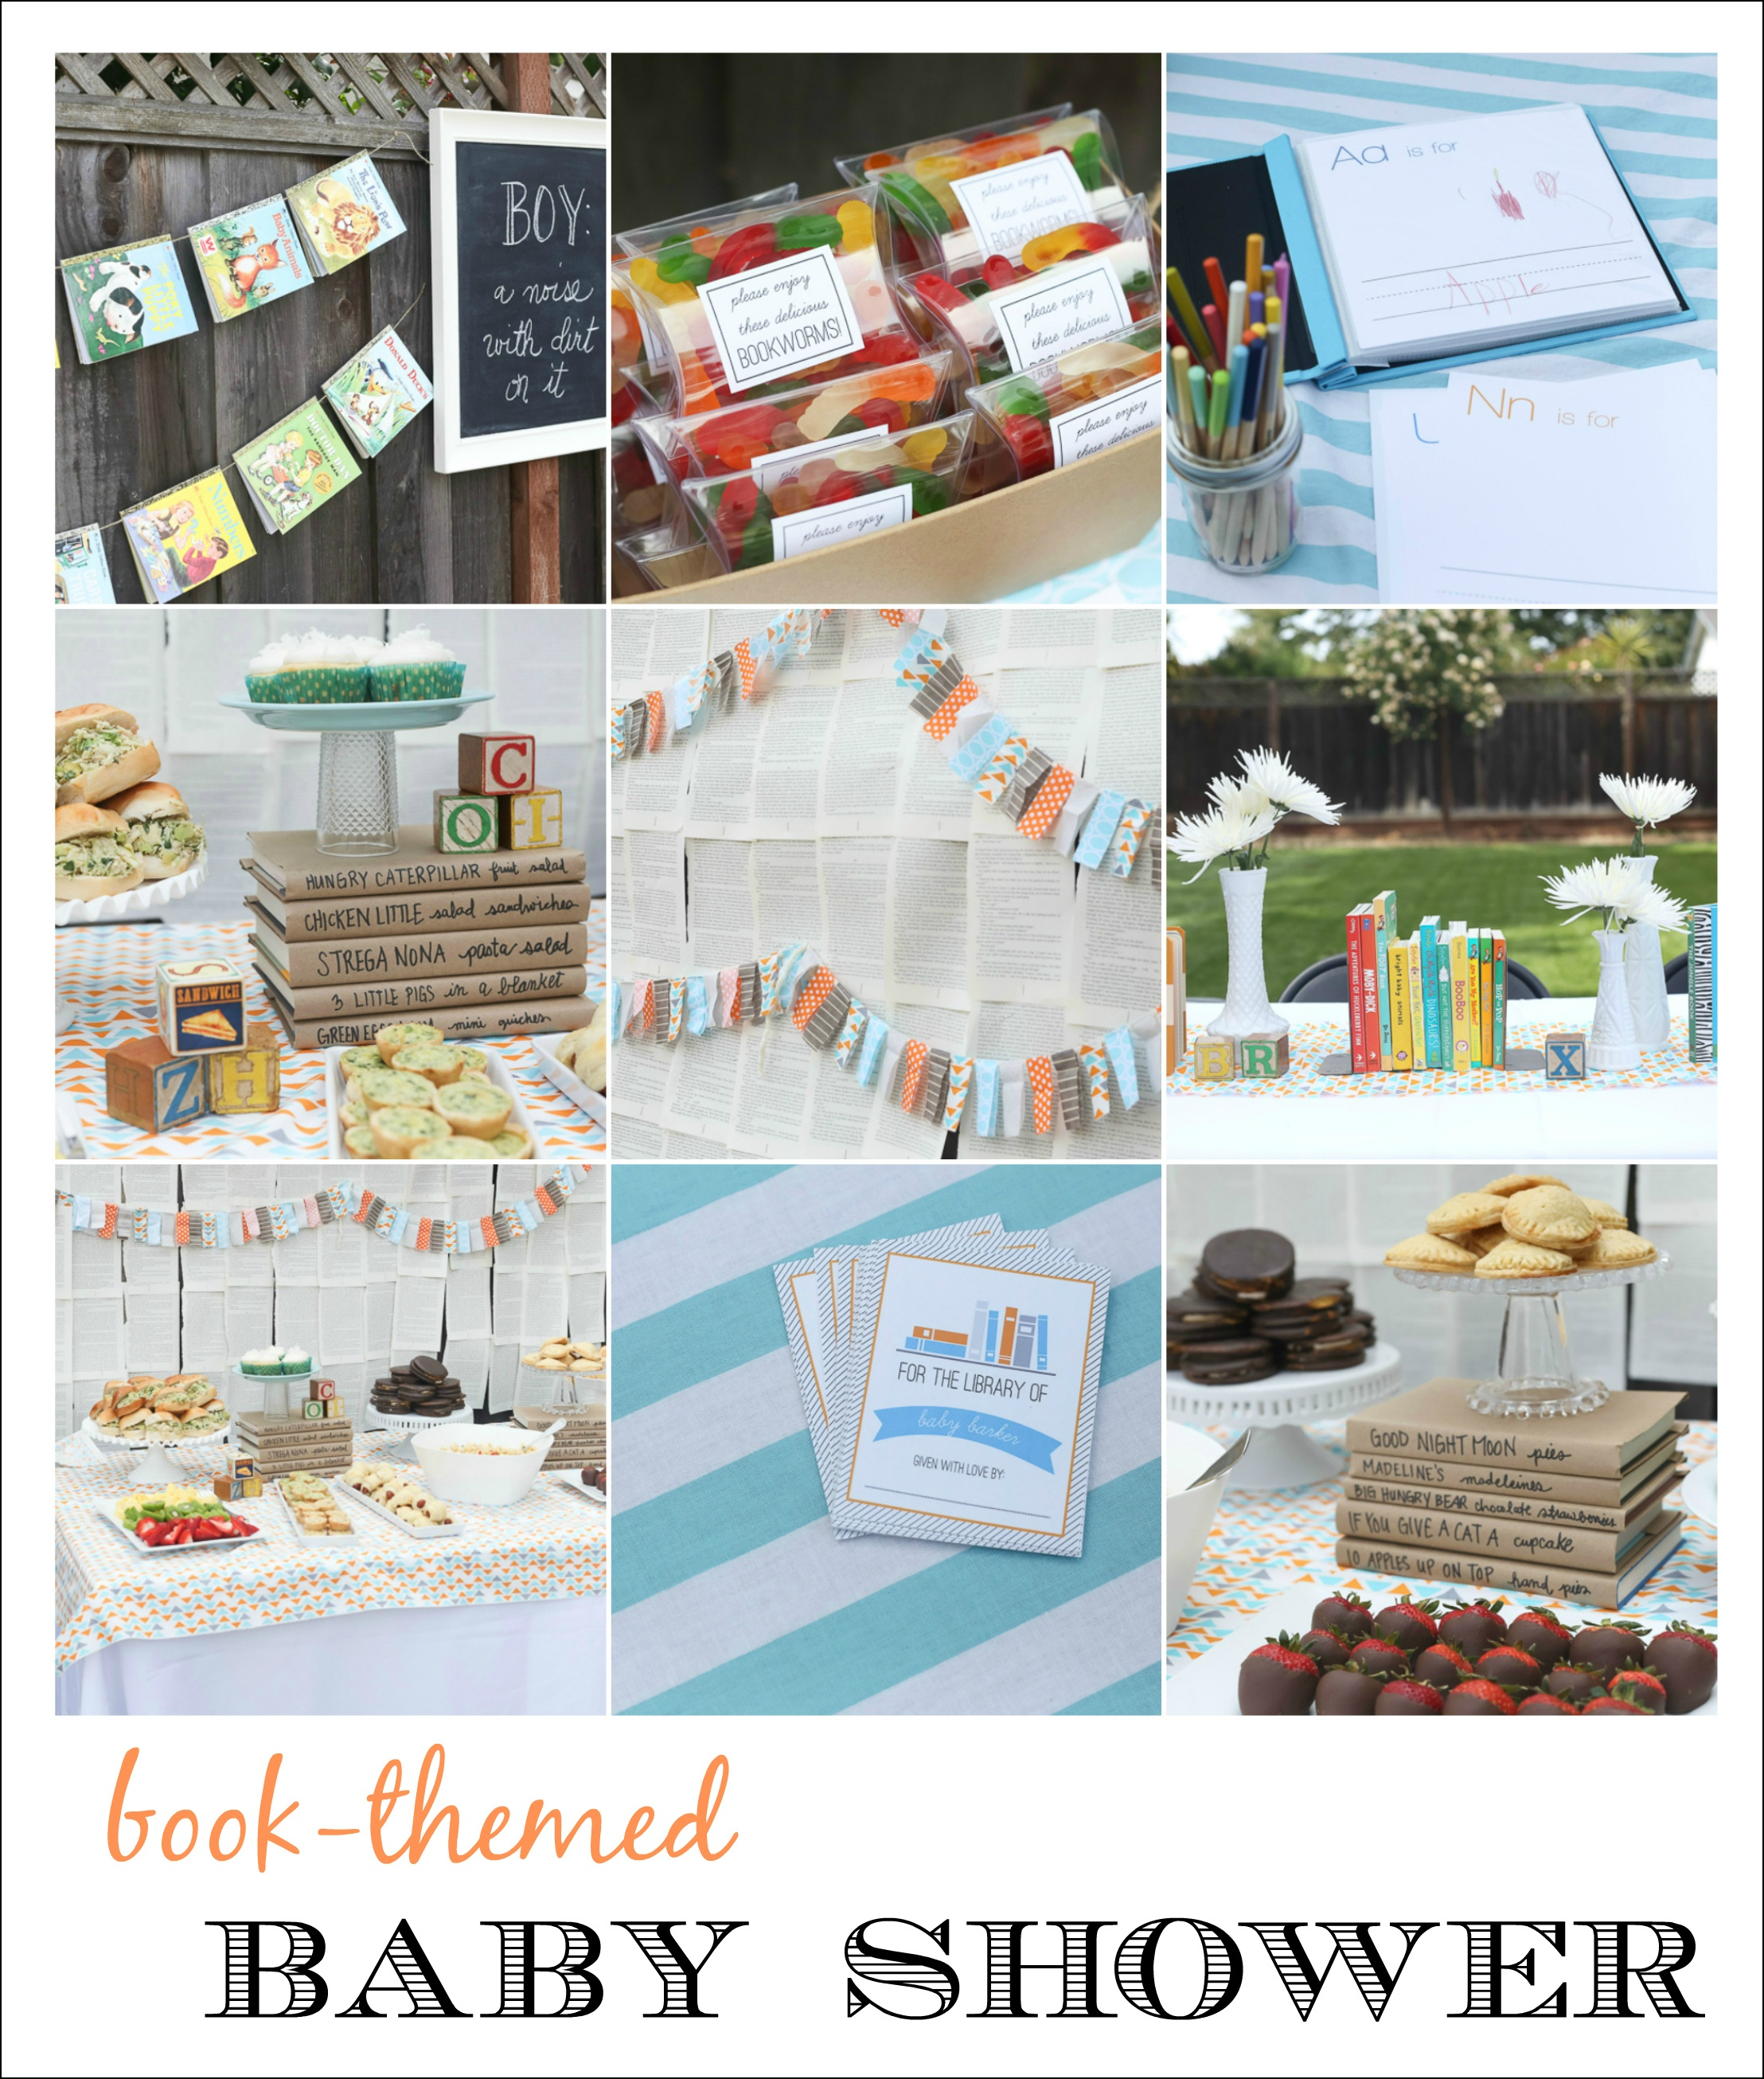 Book Baby Shower (And Free Printables!) - Free Printable Book Themed Baby Shower Invitations